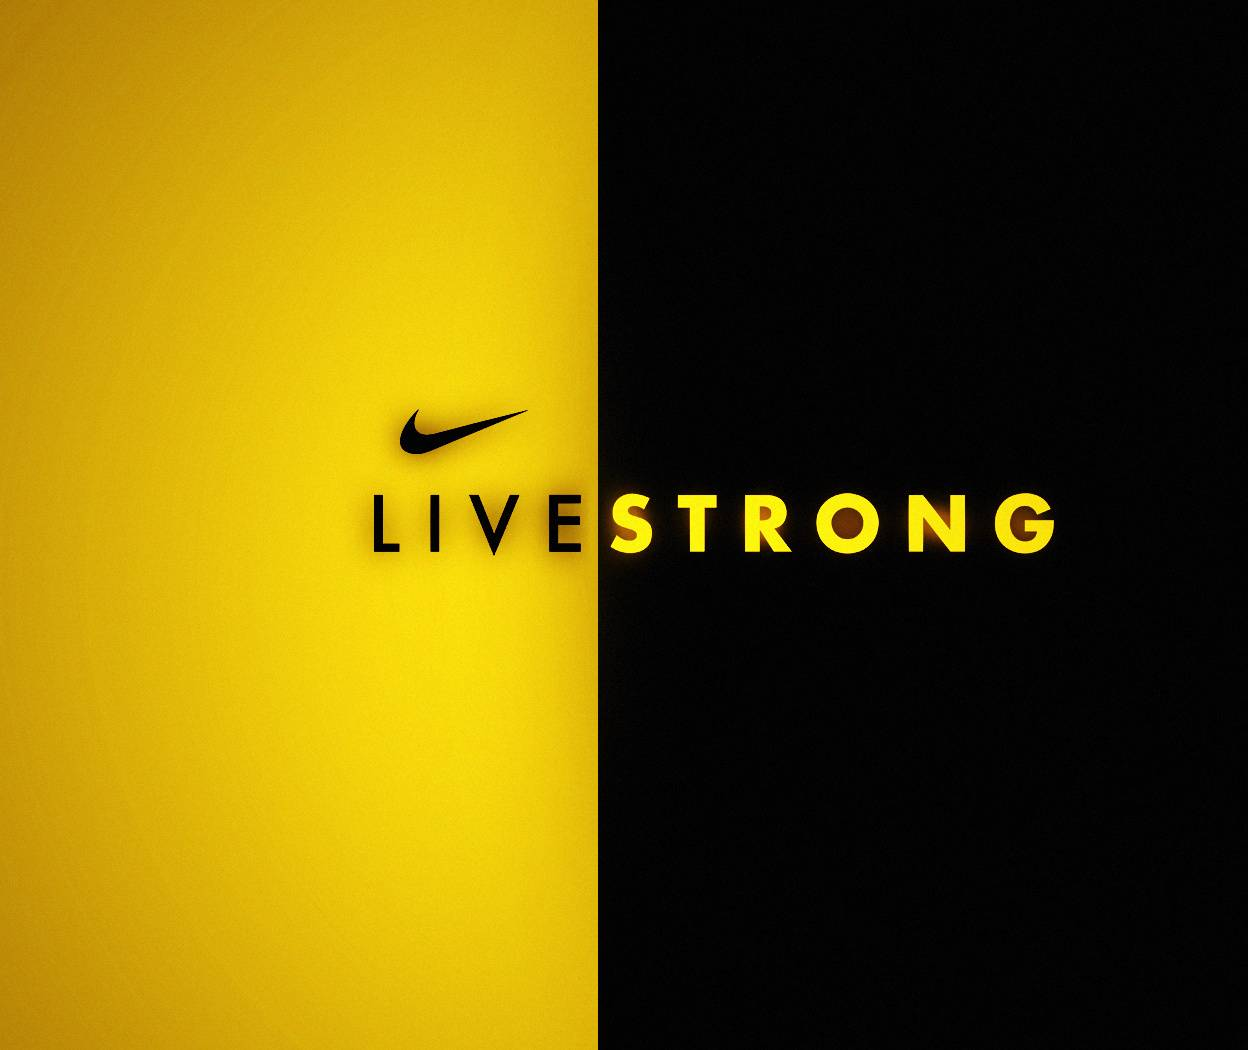 Livestrong Hd